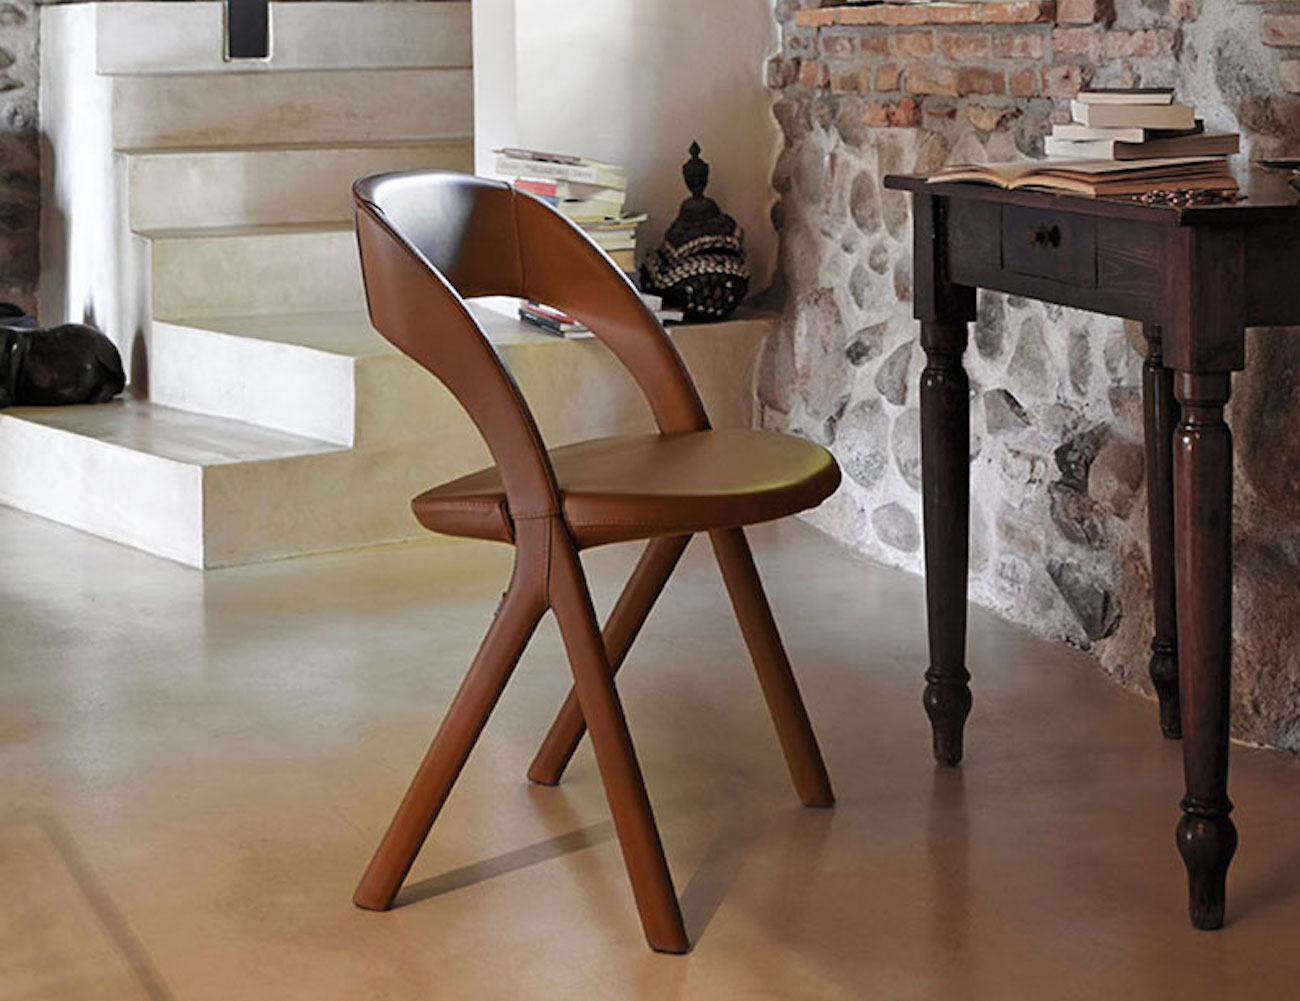 Alma Design Italian Gesto Chair